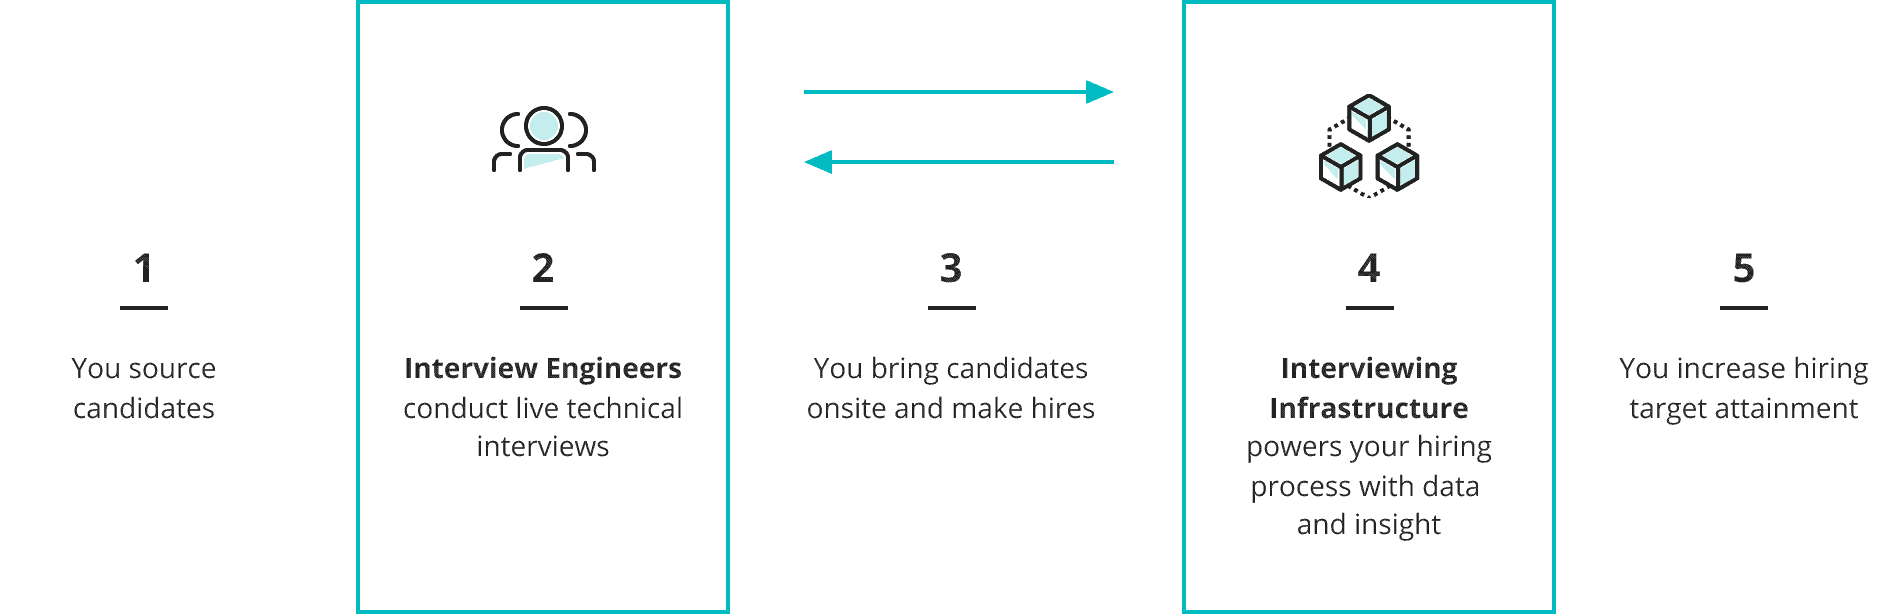 1. Your source candidates 2. Interview Engineers conduct live technical interviews 3. You bring cnadidates onsite and make hires 4. Intering Infrastructure powers your hiring process with data and insight 5. You increase hiring target attainment